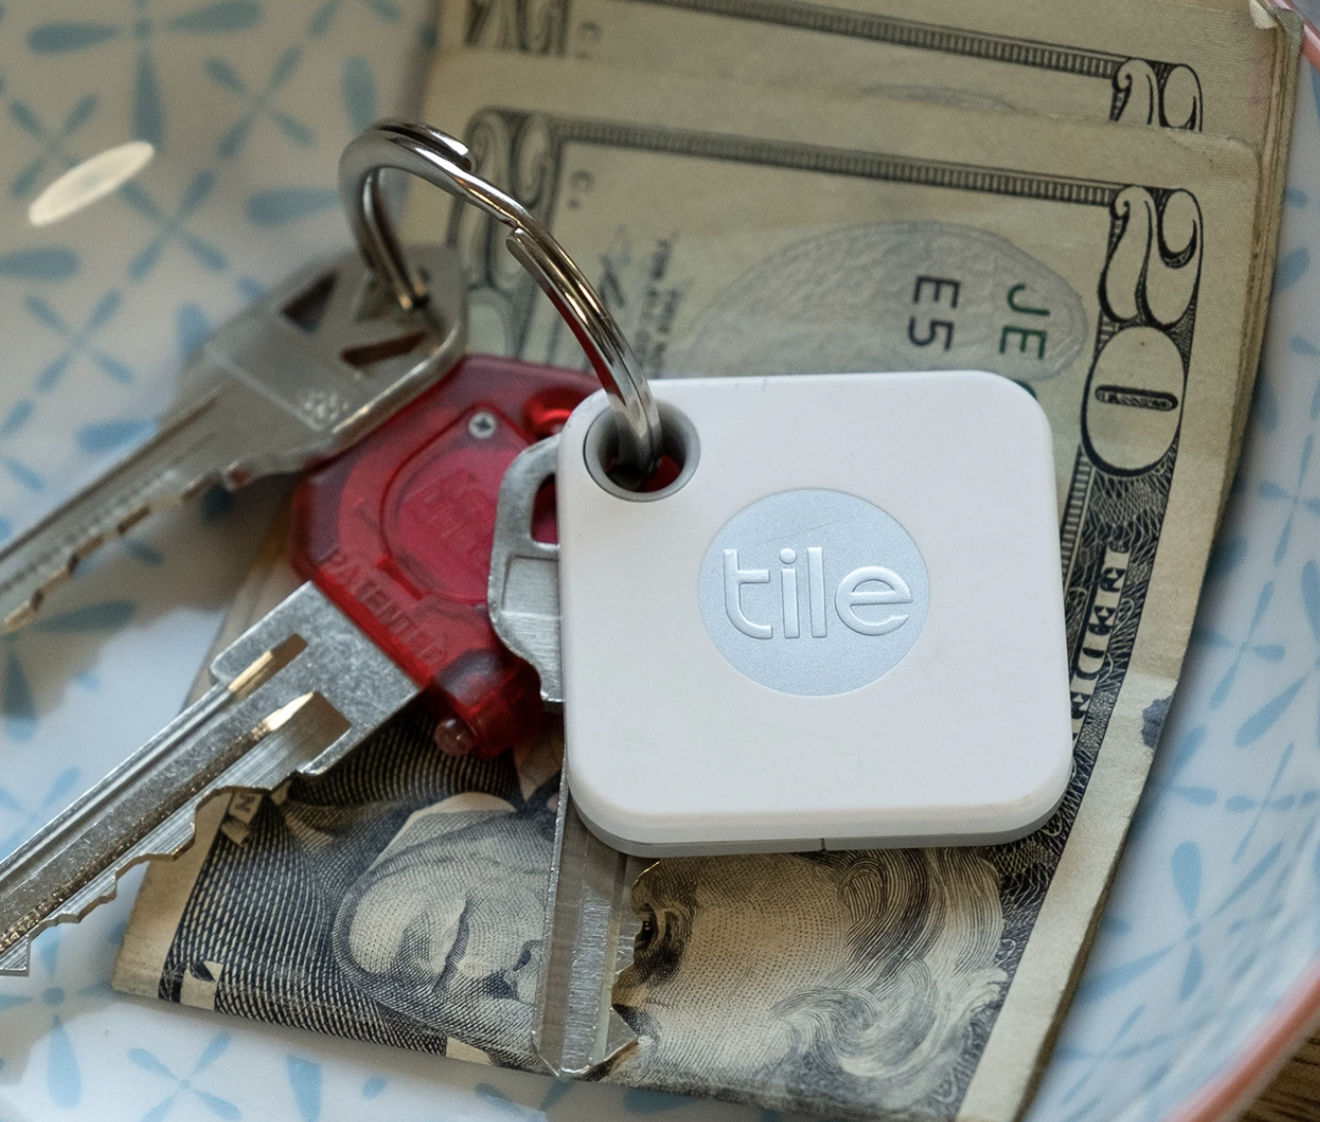 A white square Tile Mate attached to a key ring